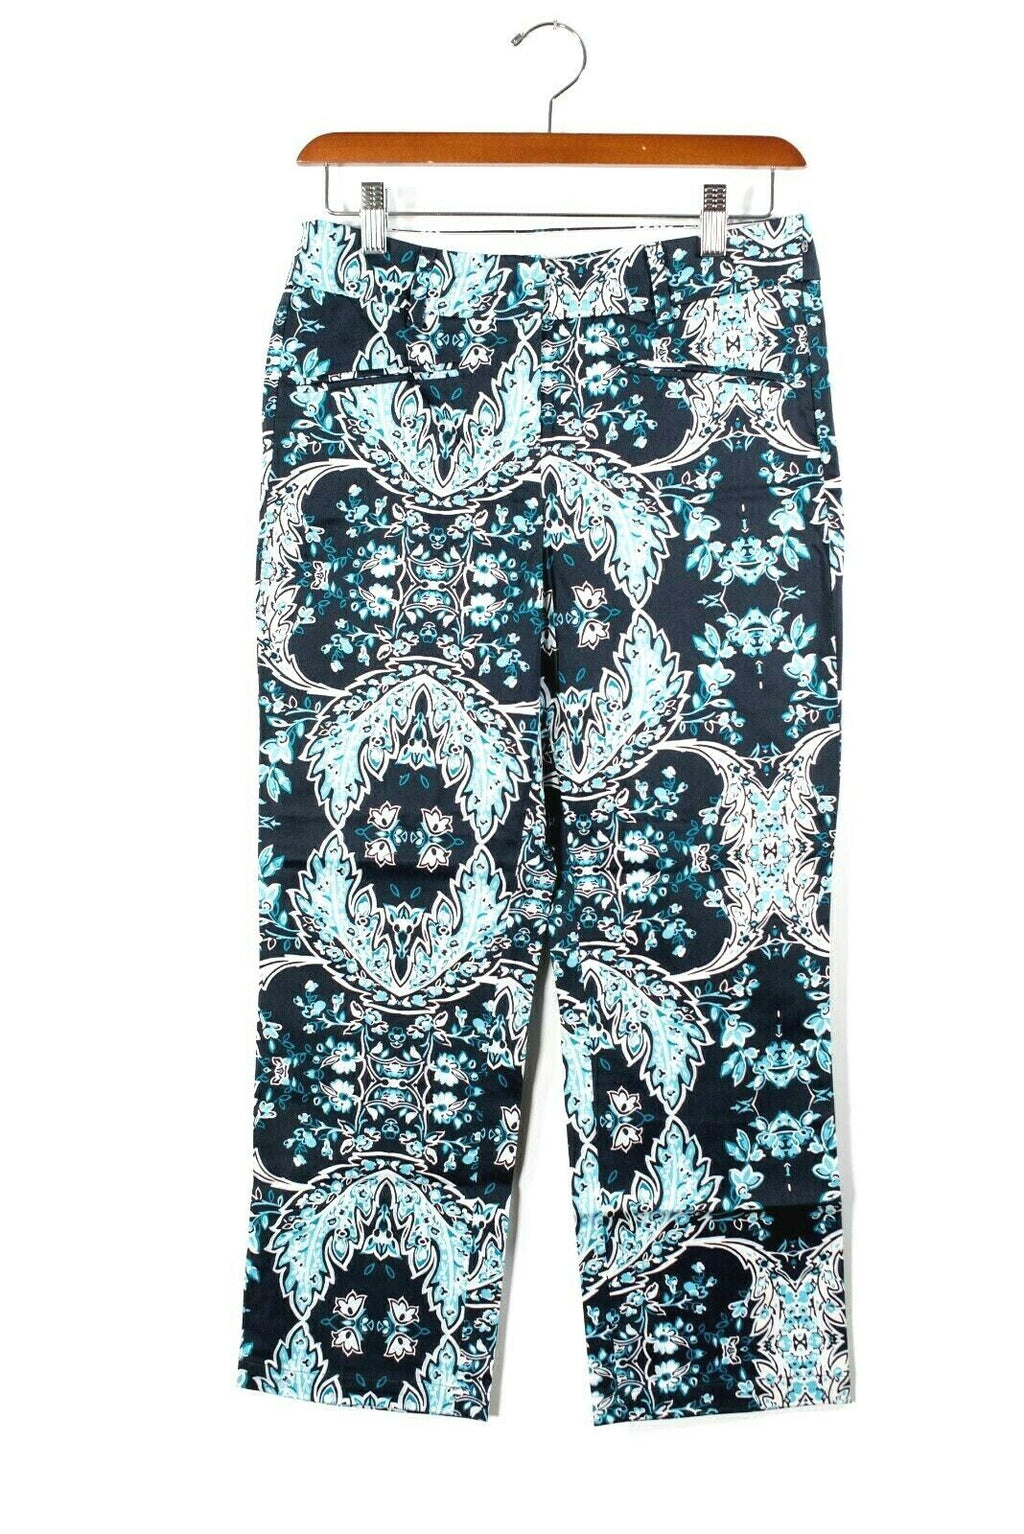 Max Mara Sportmax Code Womens Size 0 XS Blue Pants Paisley Print Crop Trousers